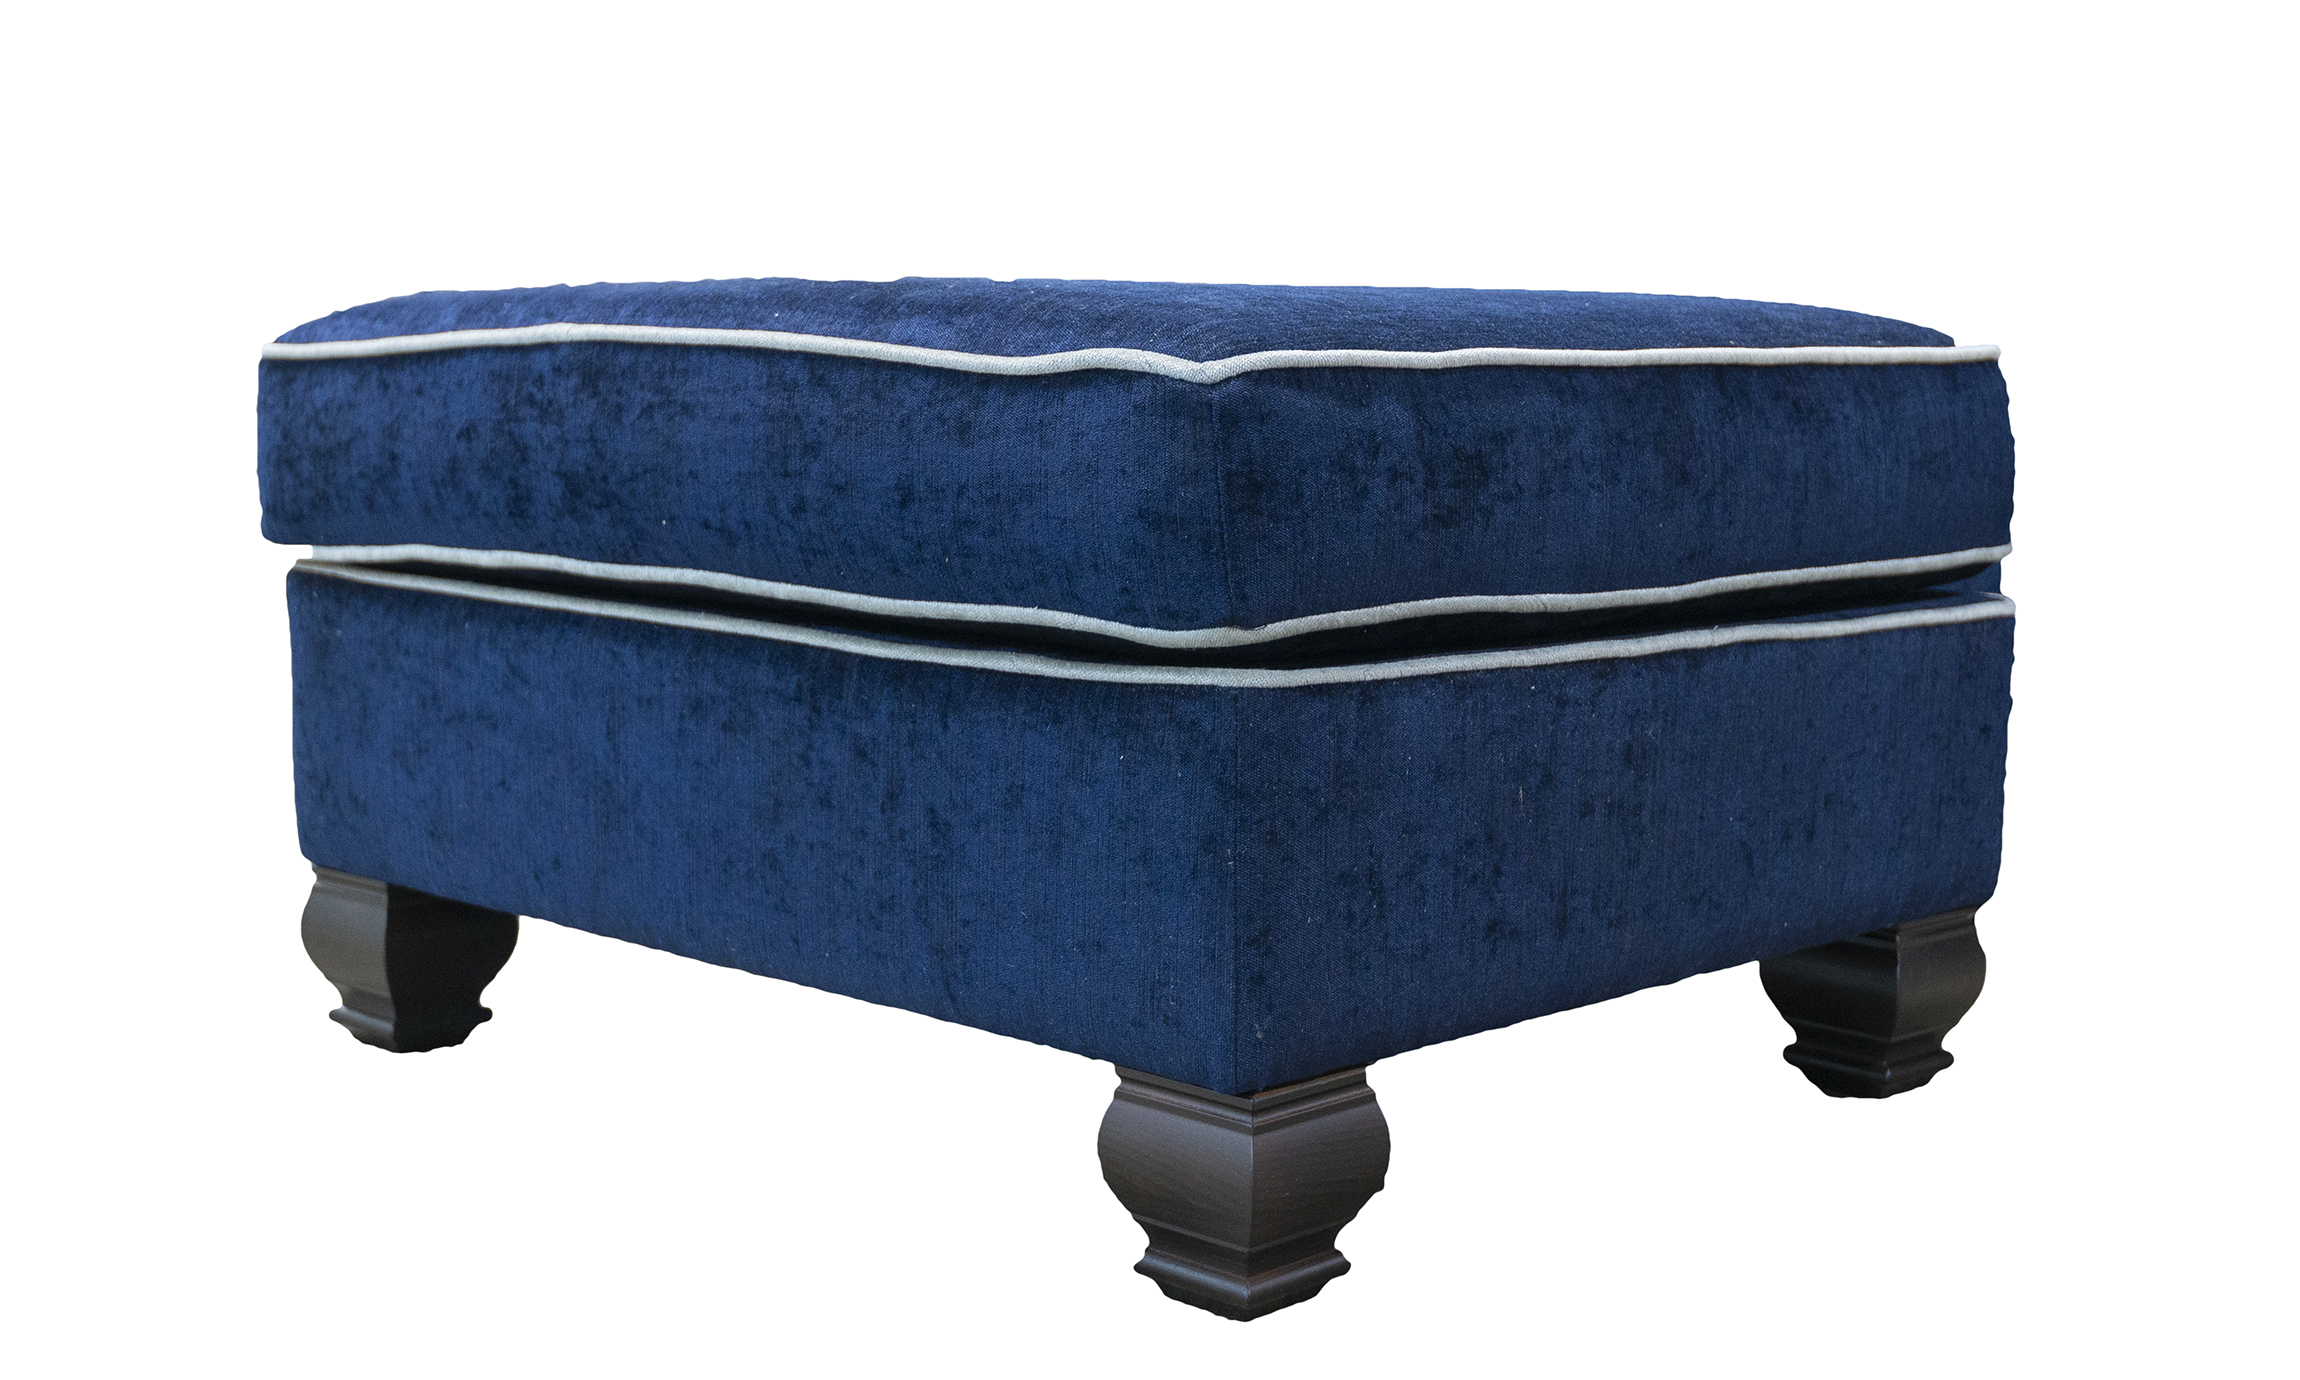 Grenoble Footstool in Edinburgh Carbon, Silver Collection Fabric